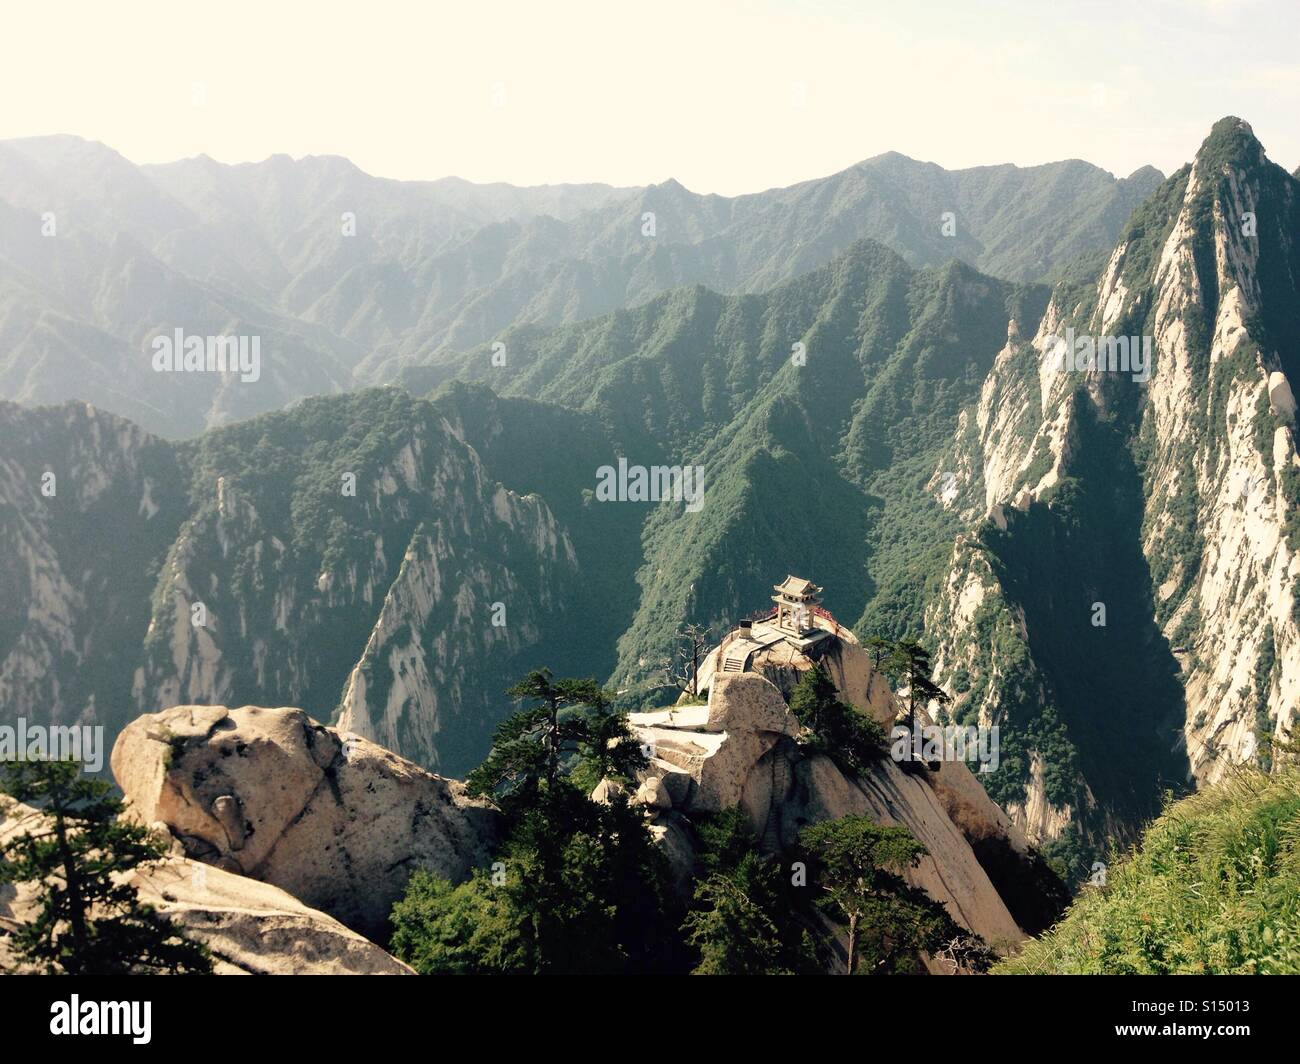 Sacred Mountain China. HuaSha July 2016. The temple of peace and wisdom - Stock Image